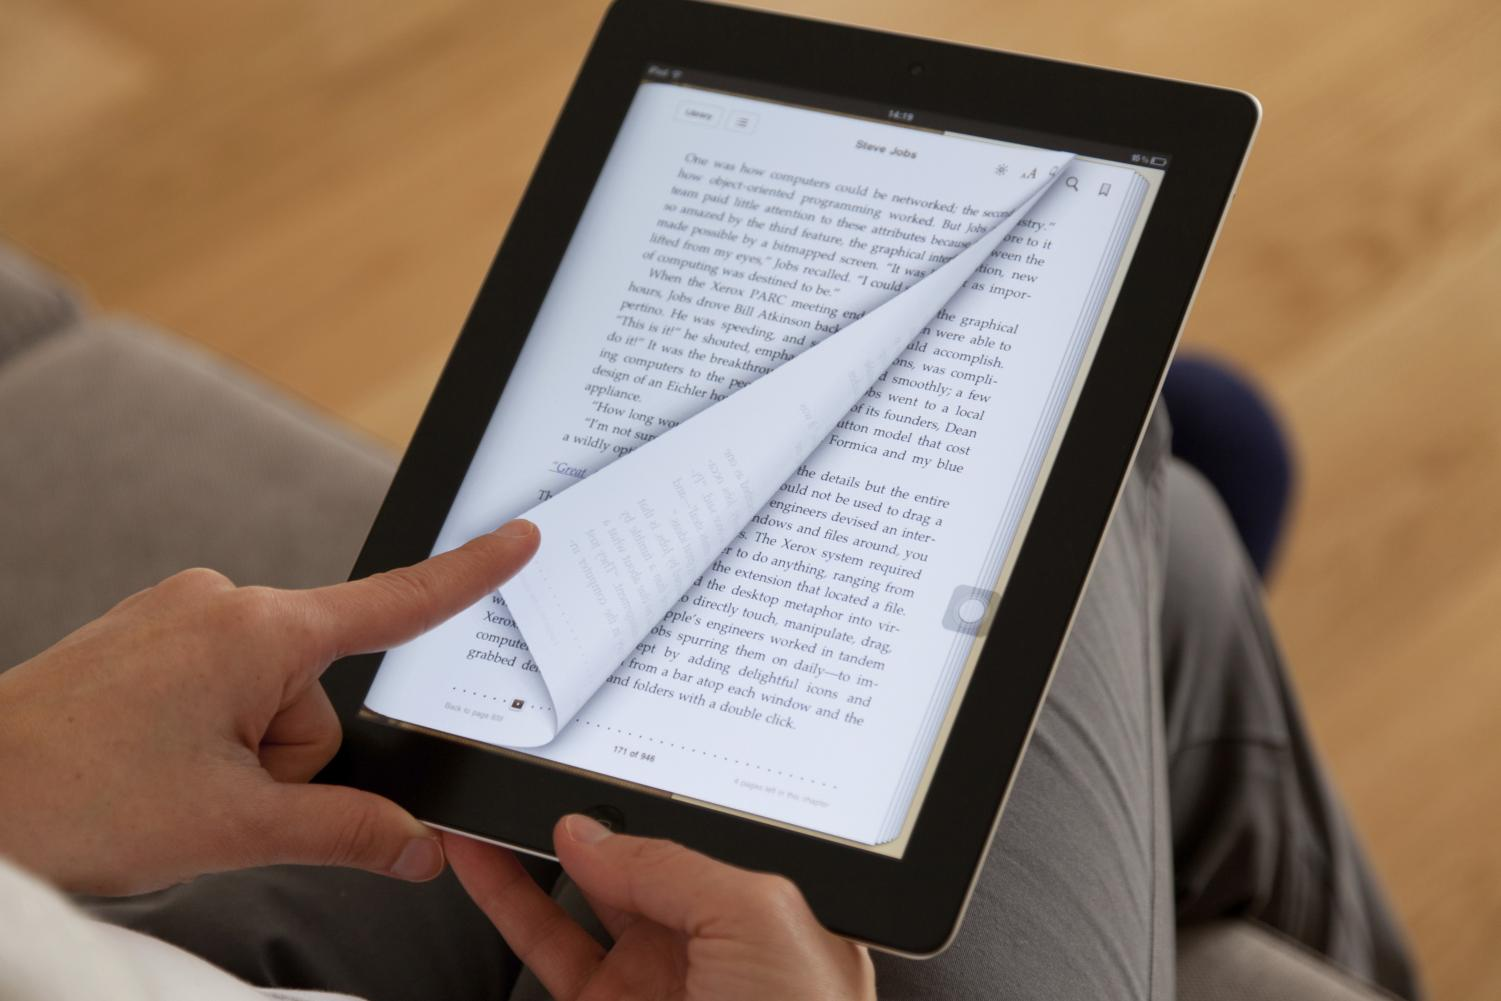 eBooks have been around since the early 2000s and are an easy alternative to having to carry around heavy paper books.